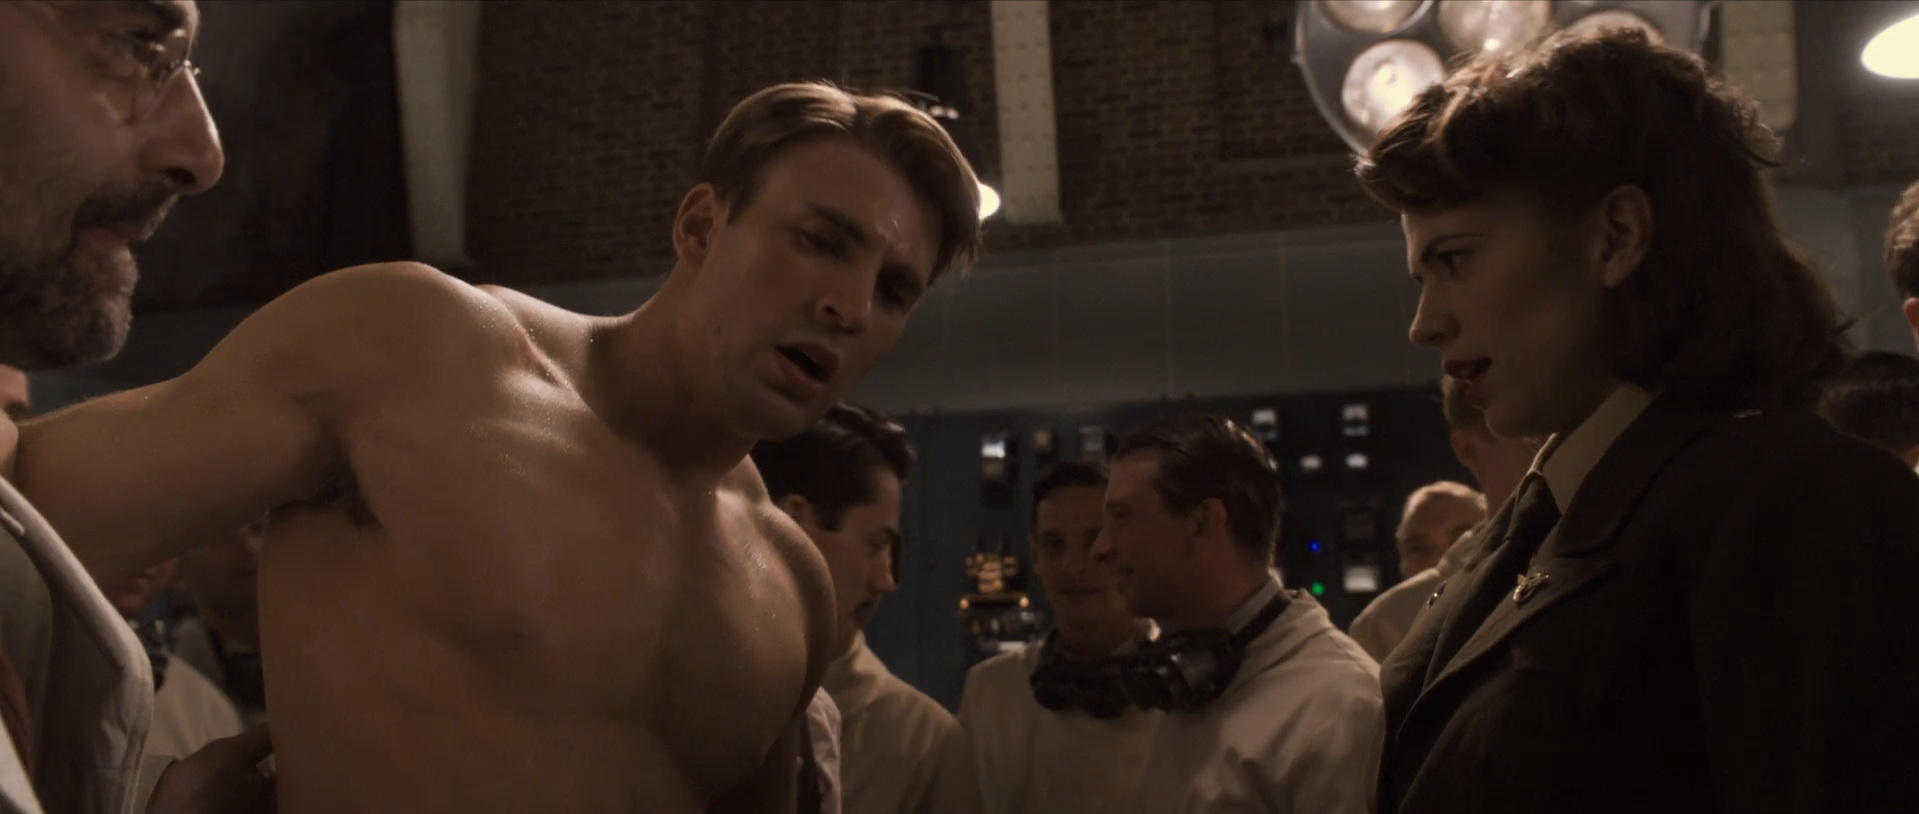 Captain America: The First Avenger  (2011): idealized American hero